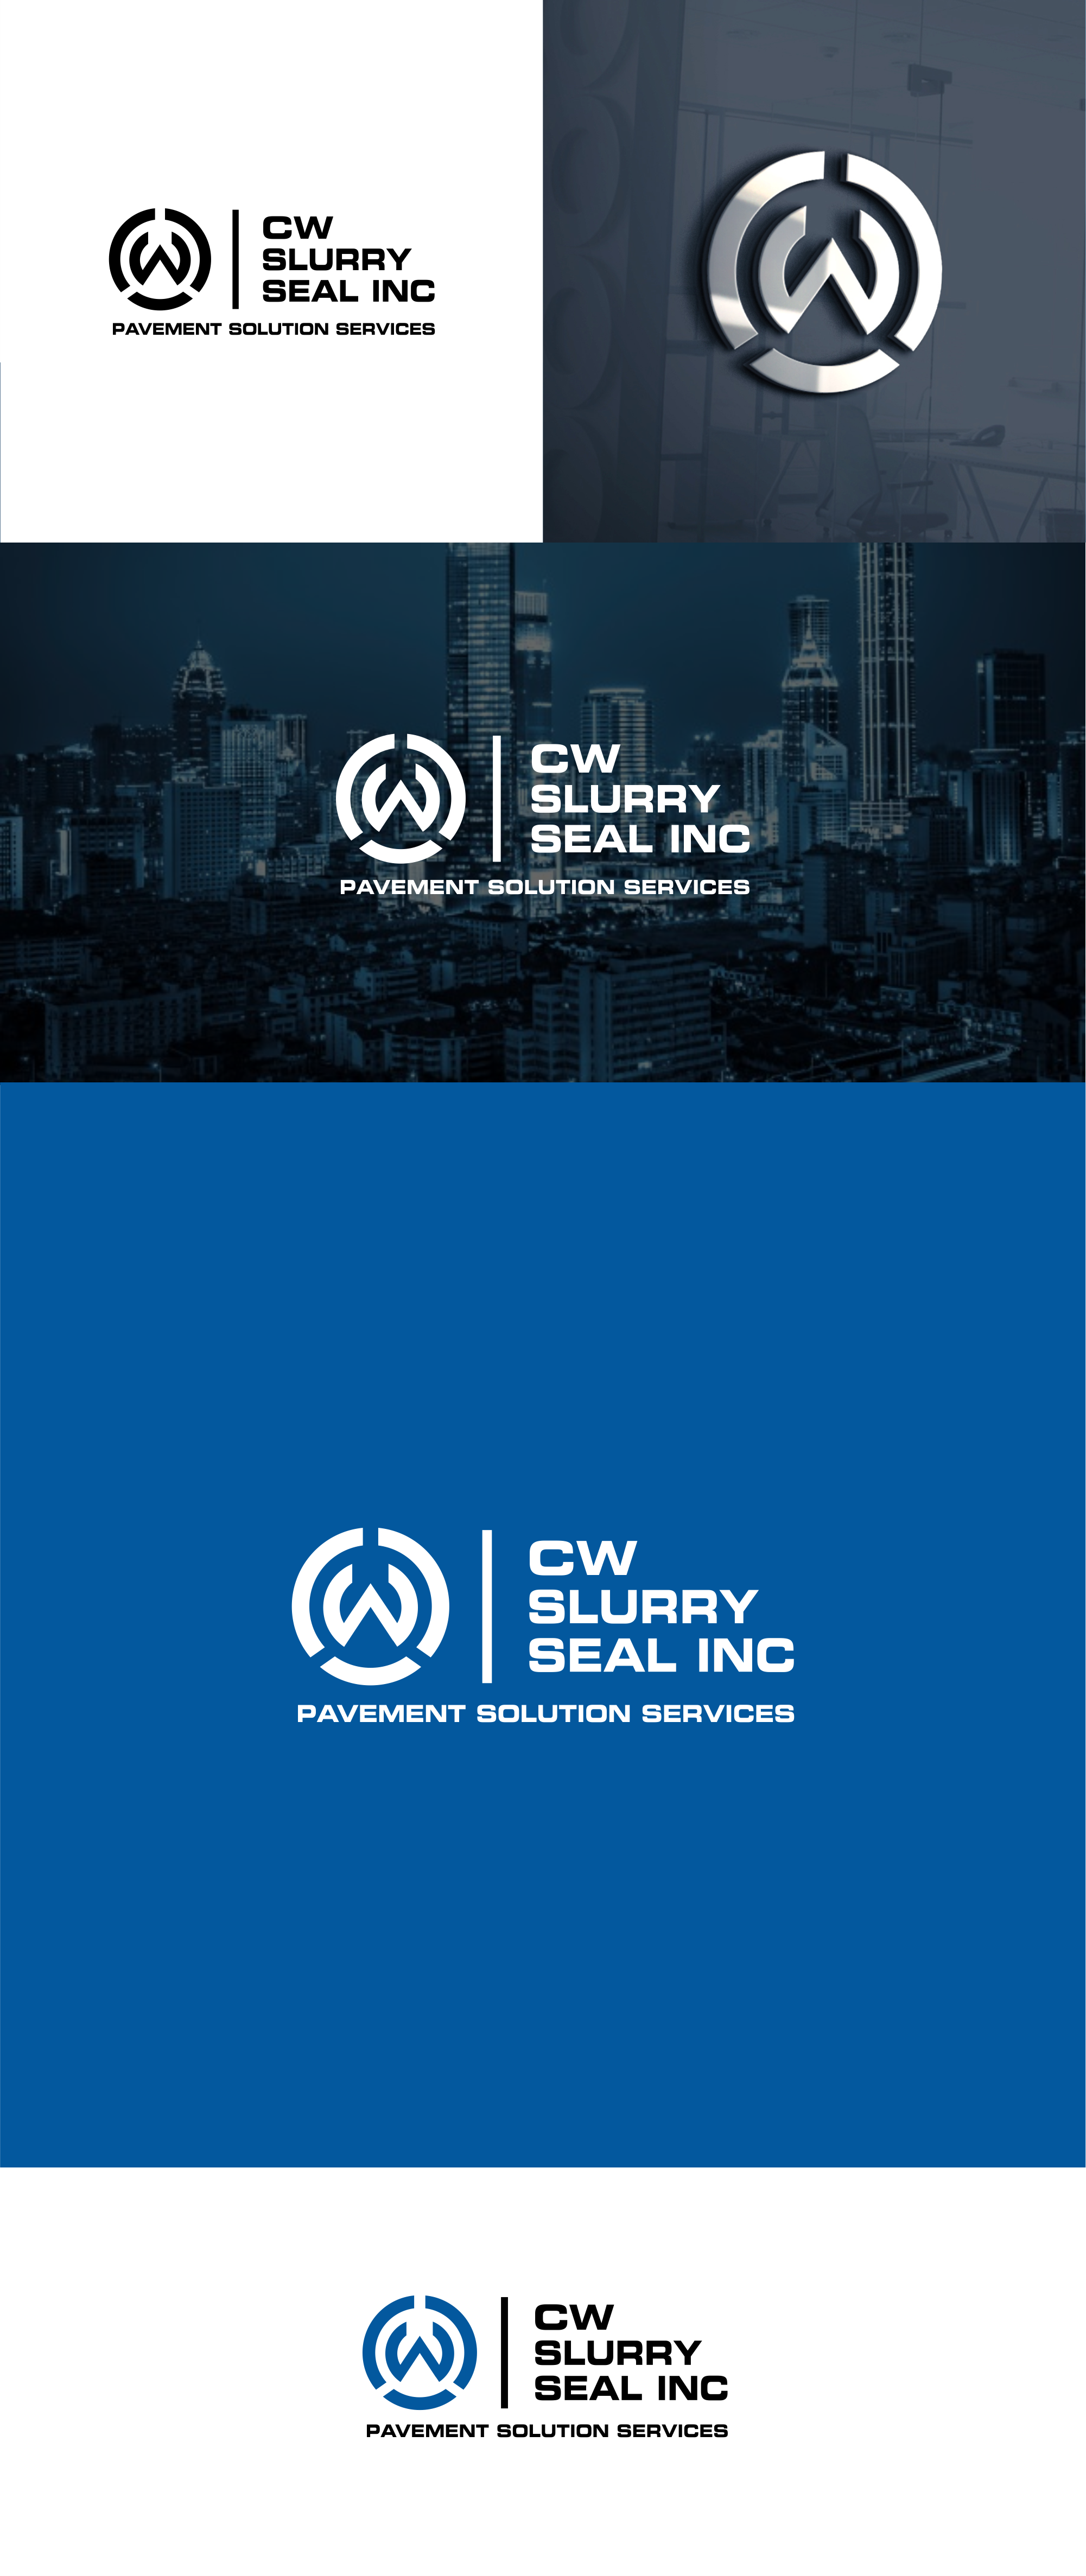 design the slurry seal machine and product in the logo. Check out CWslurryseal.com